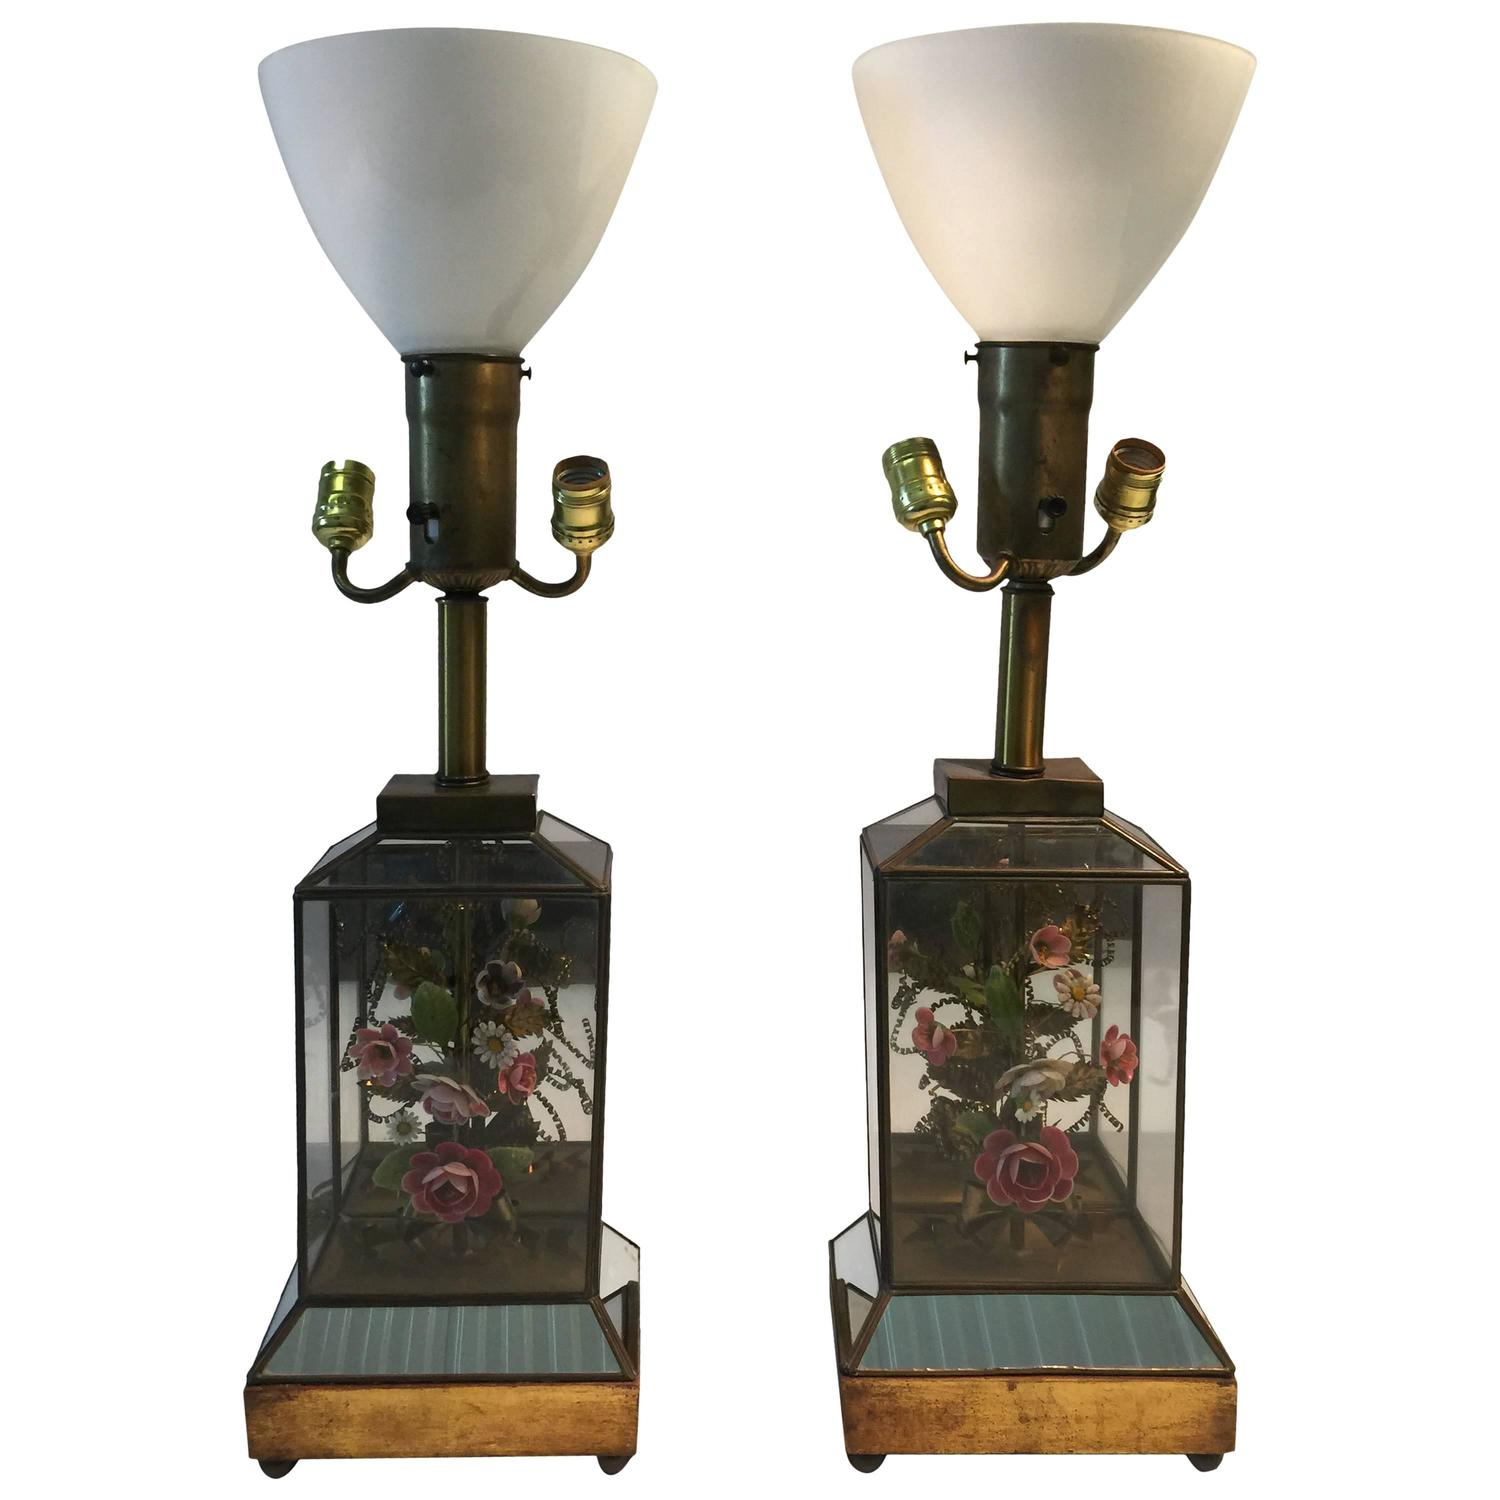 Unique lamps for sale - Unique Dorothy Draper Style Mirrored Pair Of Shell And Brass Flower Diorama Lamps At 1stdibs